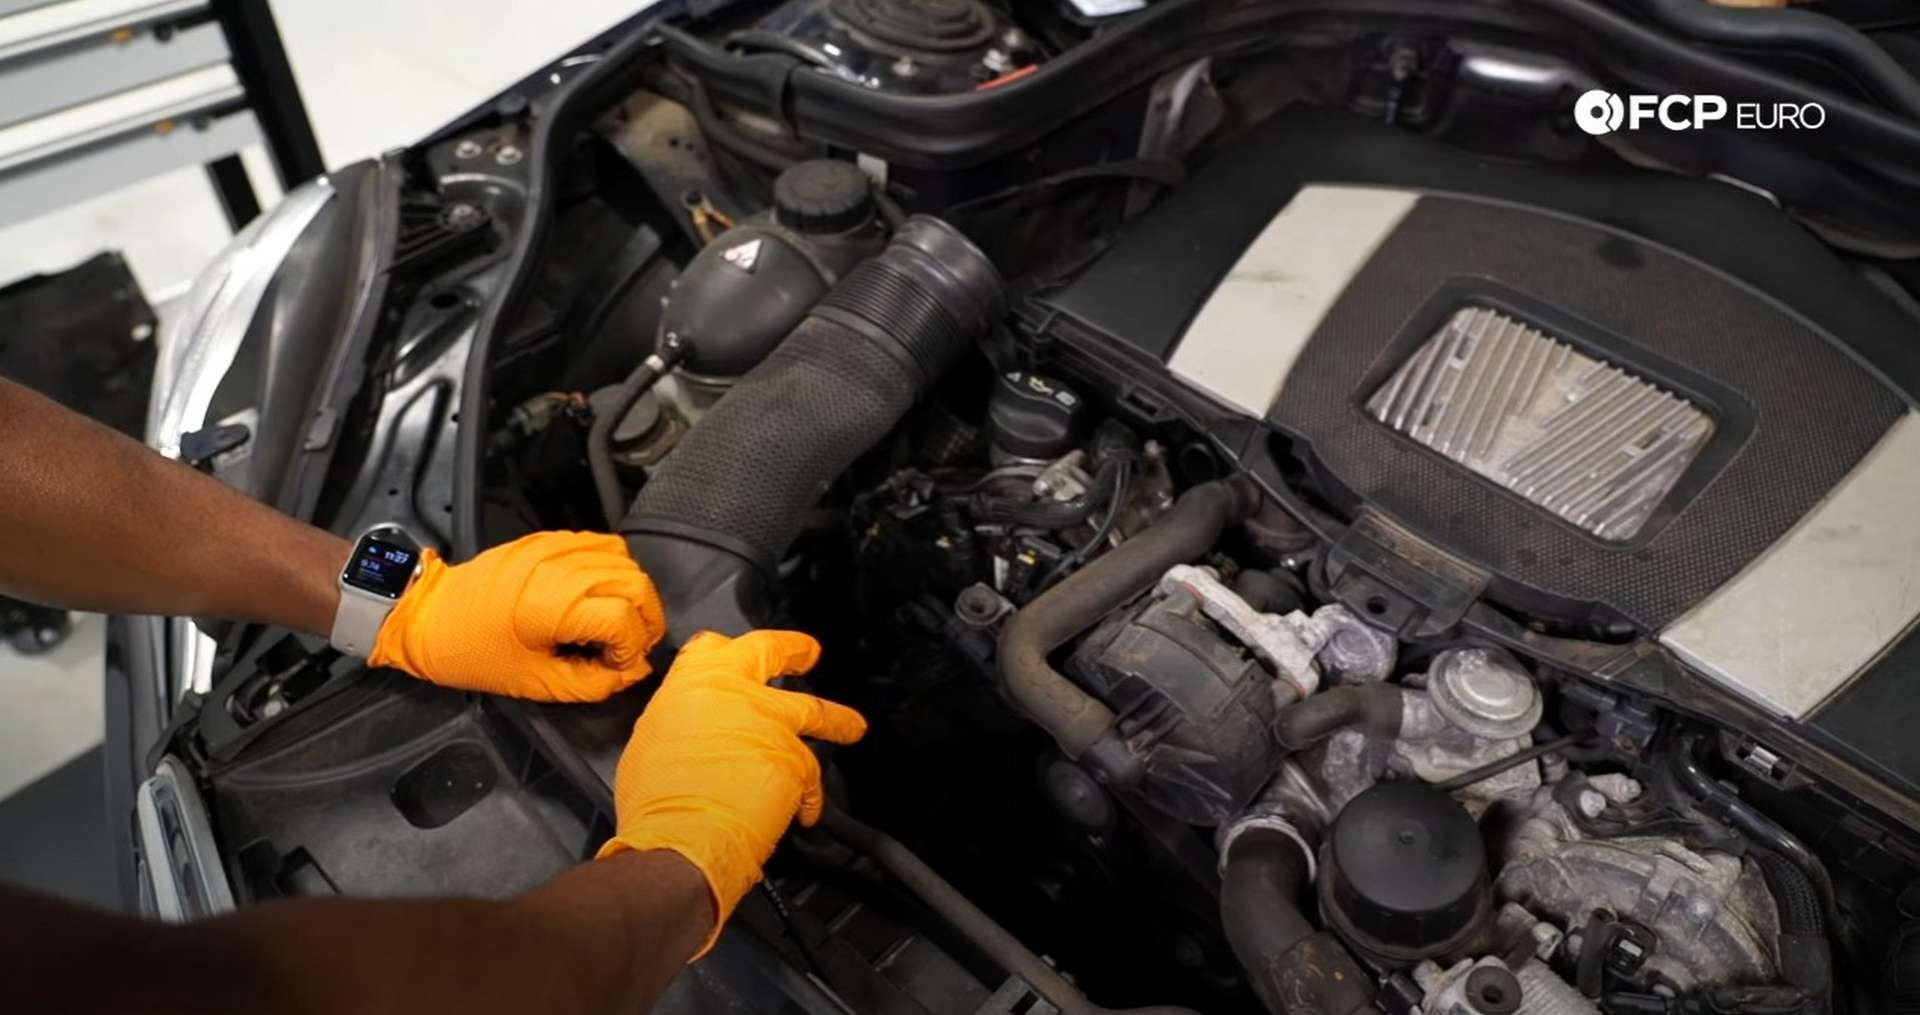 DIY Mercedes W212/204 Alternator and Drive Belt Replacement removing the intake snorkel